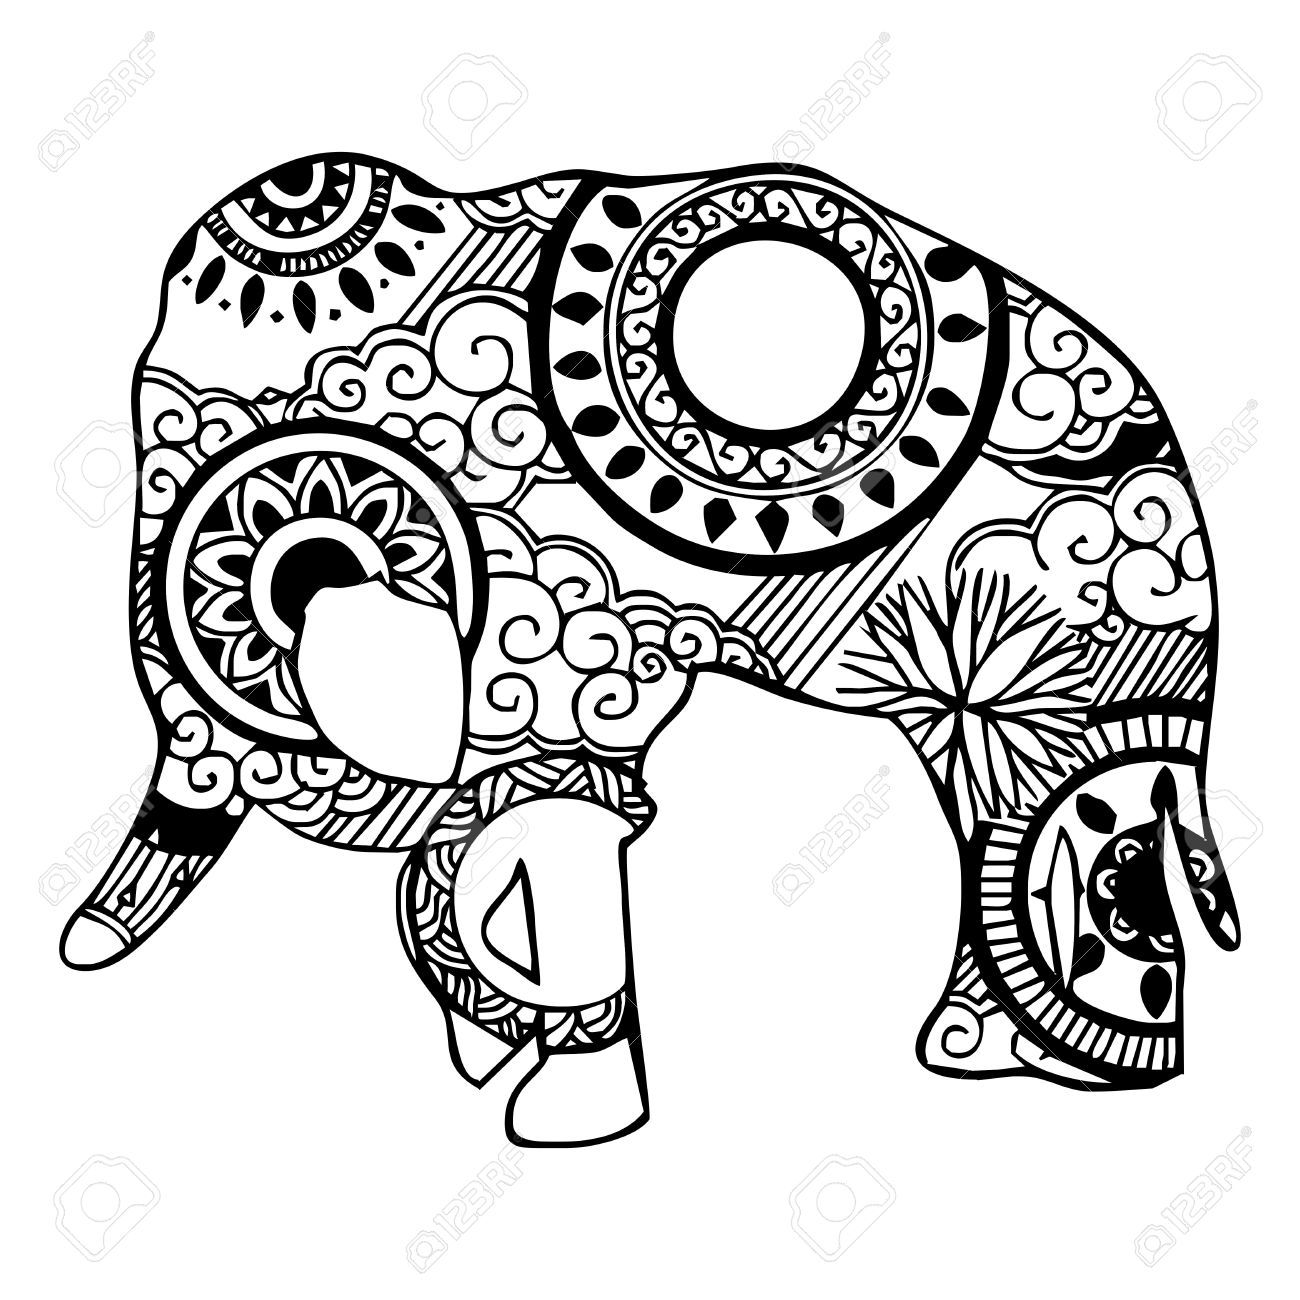 Elephant with cloud and rain ornament tattoo royalty free cliparts elephant with cloud and rain ornament tattoo stock vector 29294257 buycottarizona Images